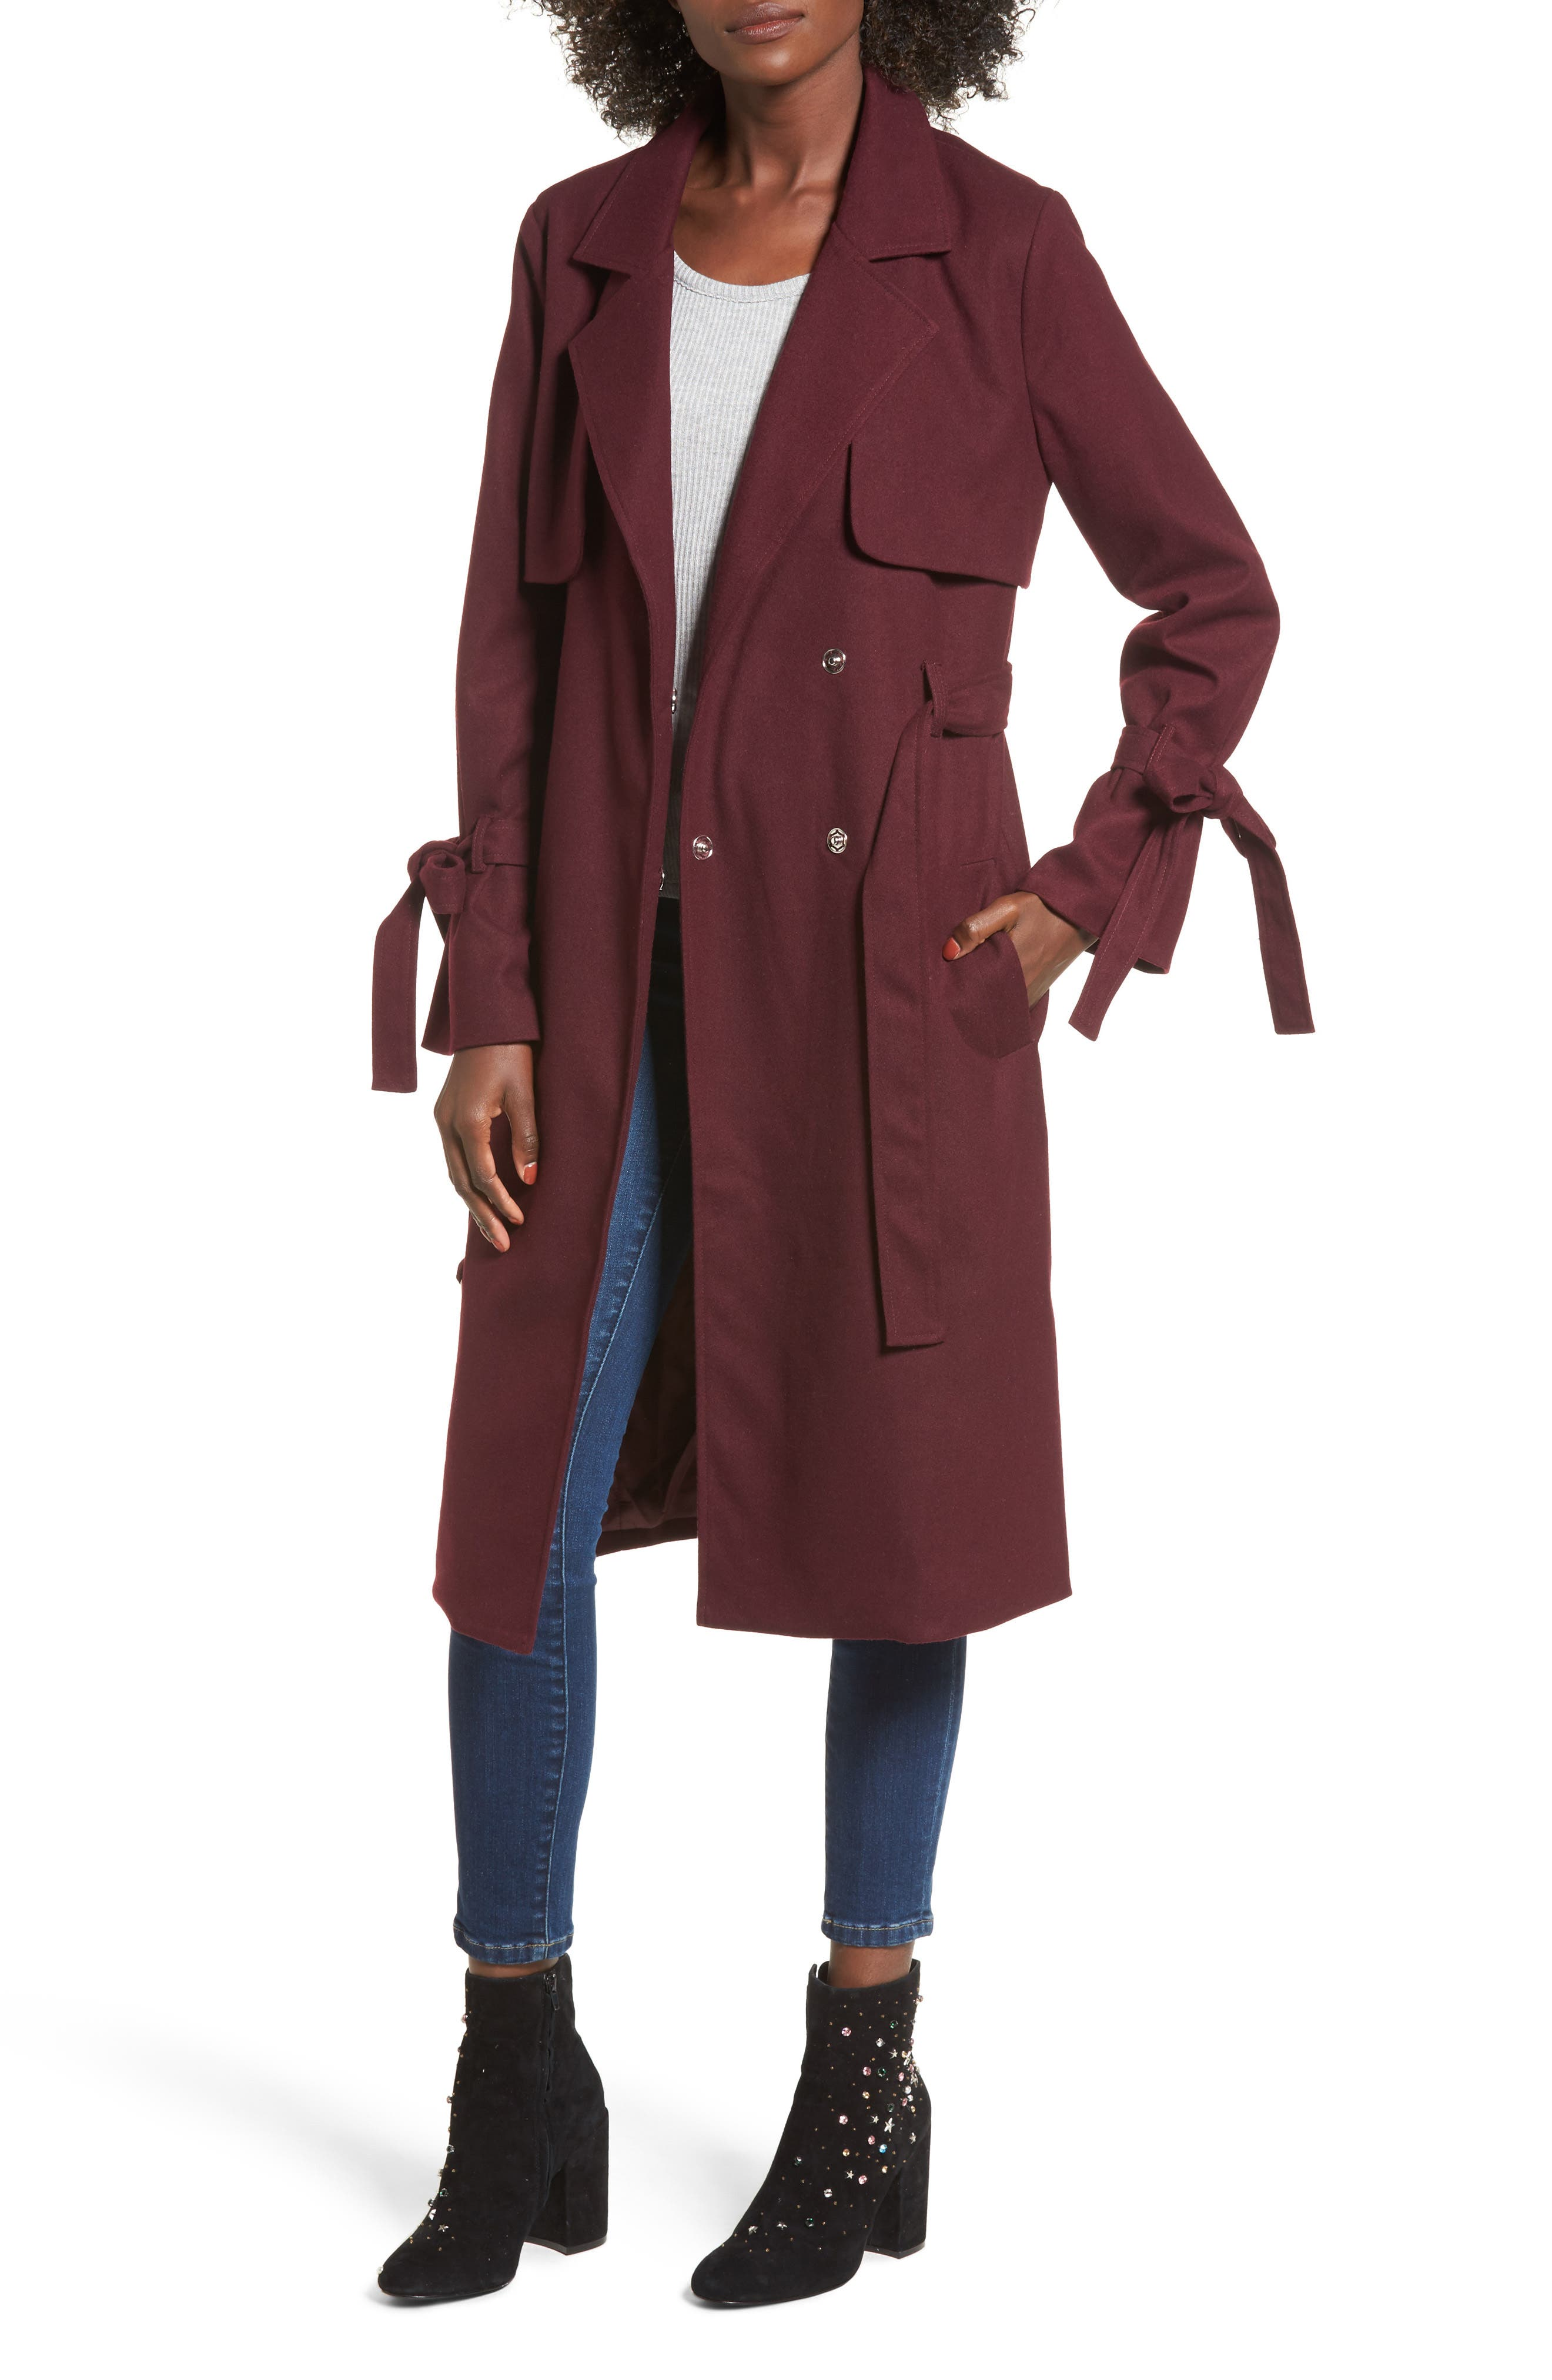 Alternate Image 1 Selected - J.O.A. Tie Sleeve Trench Coat